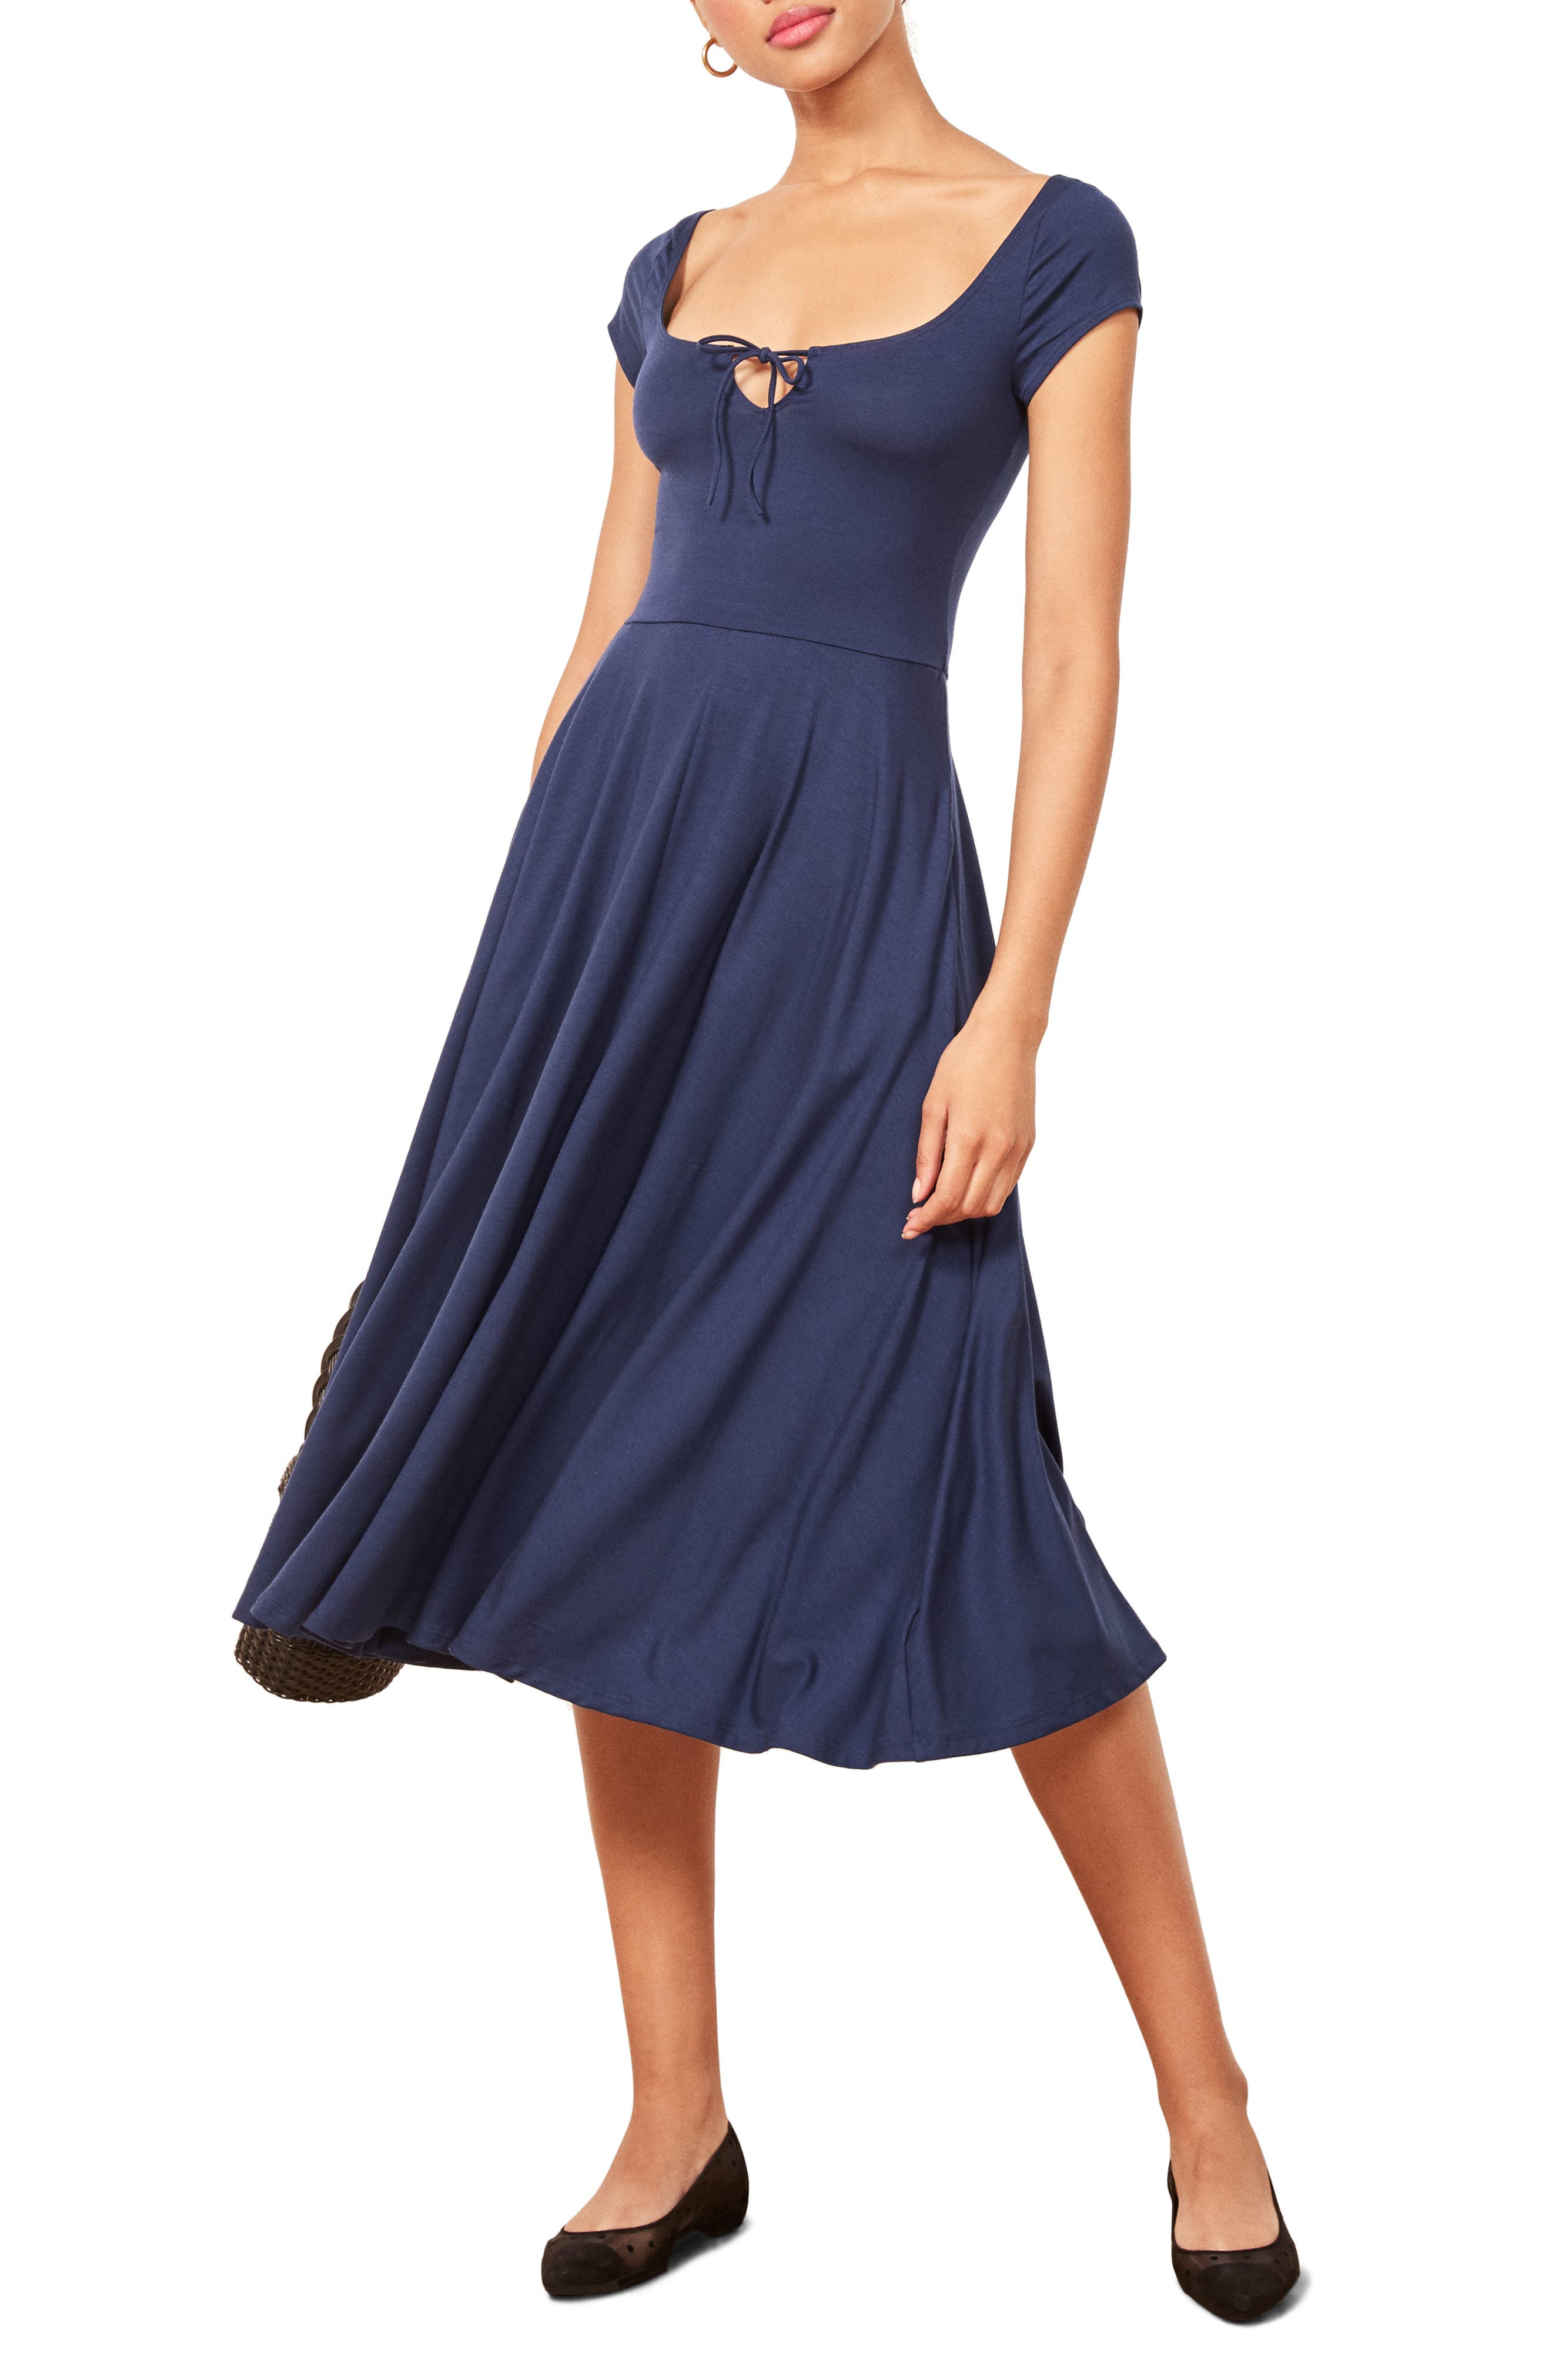 Krista Dress,                         Main,                         color, NAVY